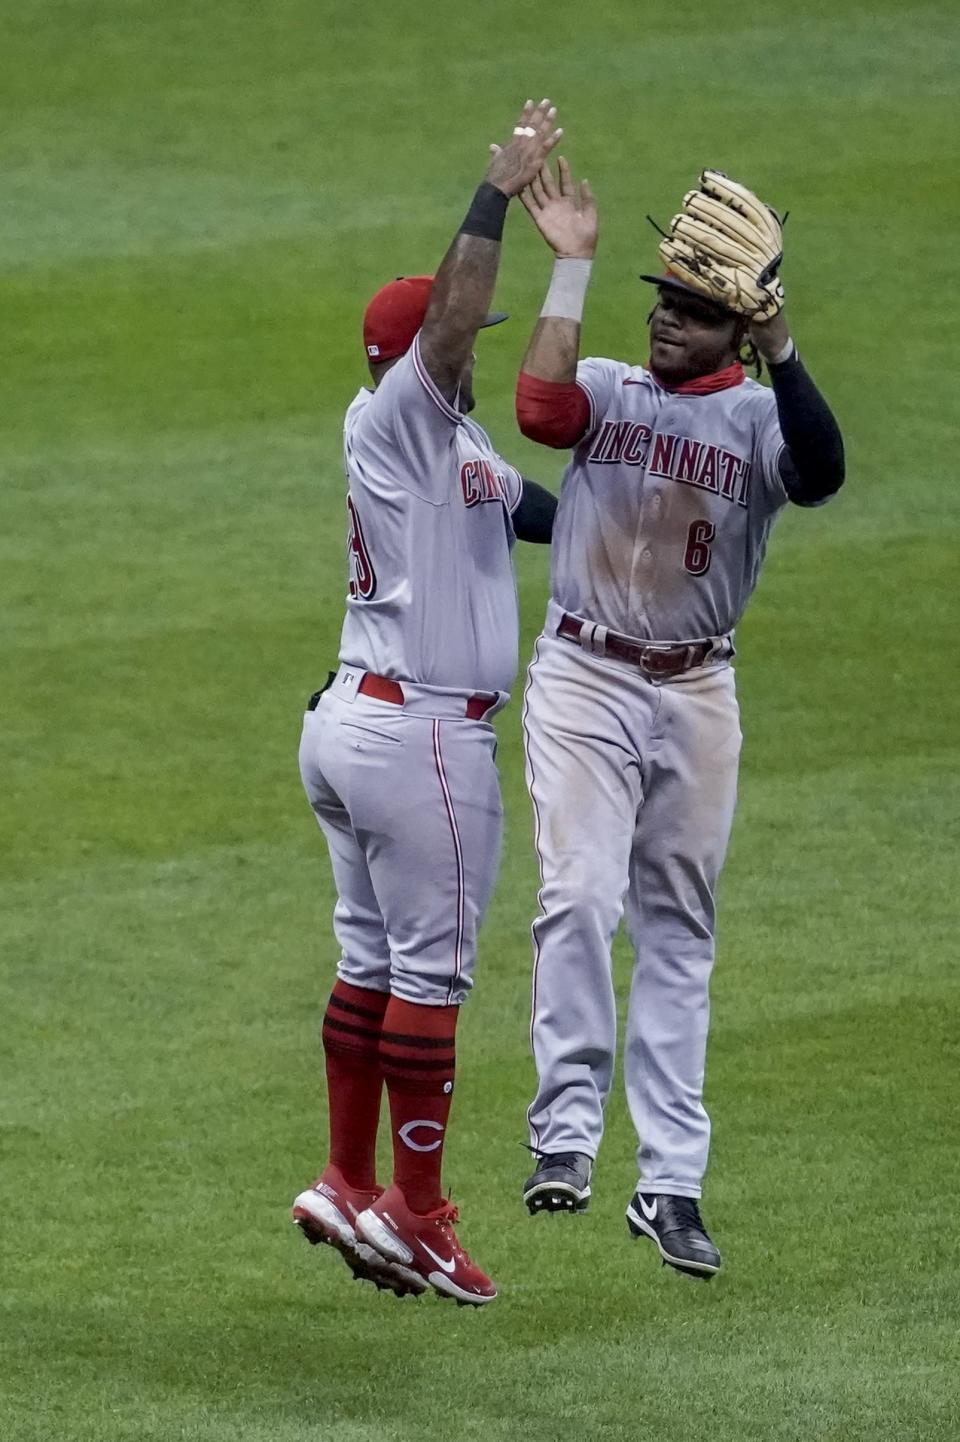 Cincinnati Reds' Phillip Ervin and Christian Colon celebrate after a baseball game against the Milwaukee Brewers Friday, Aug. 7, 2020, in Milwaukee. The Reds won 8-3. (AP Photo/Morry Gash)